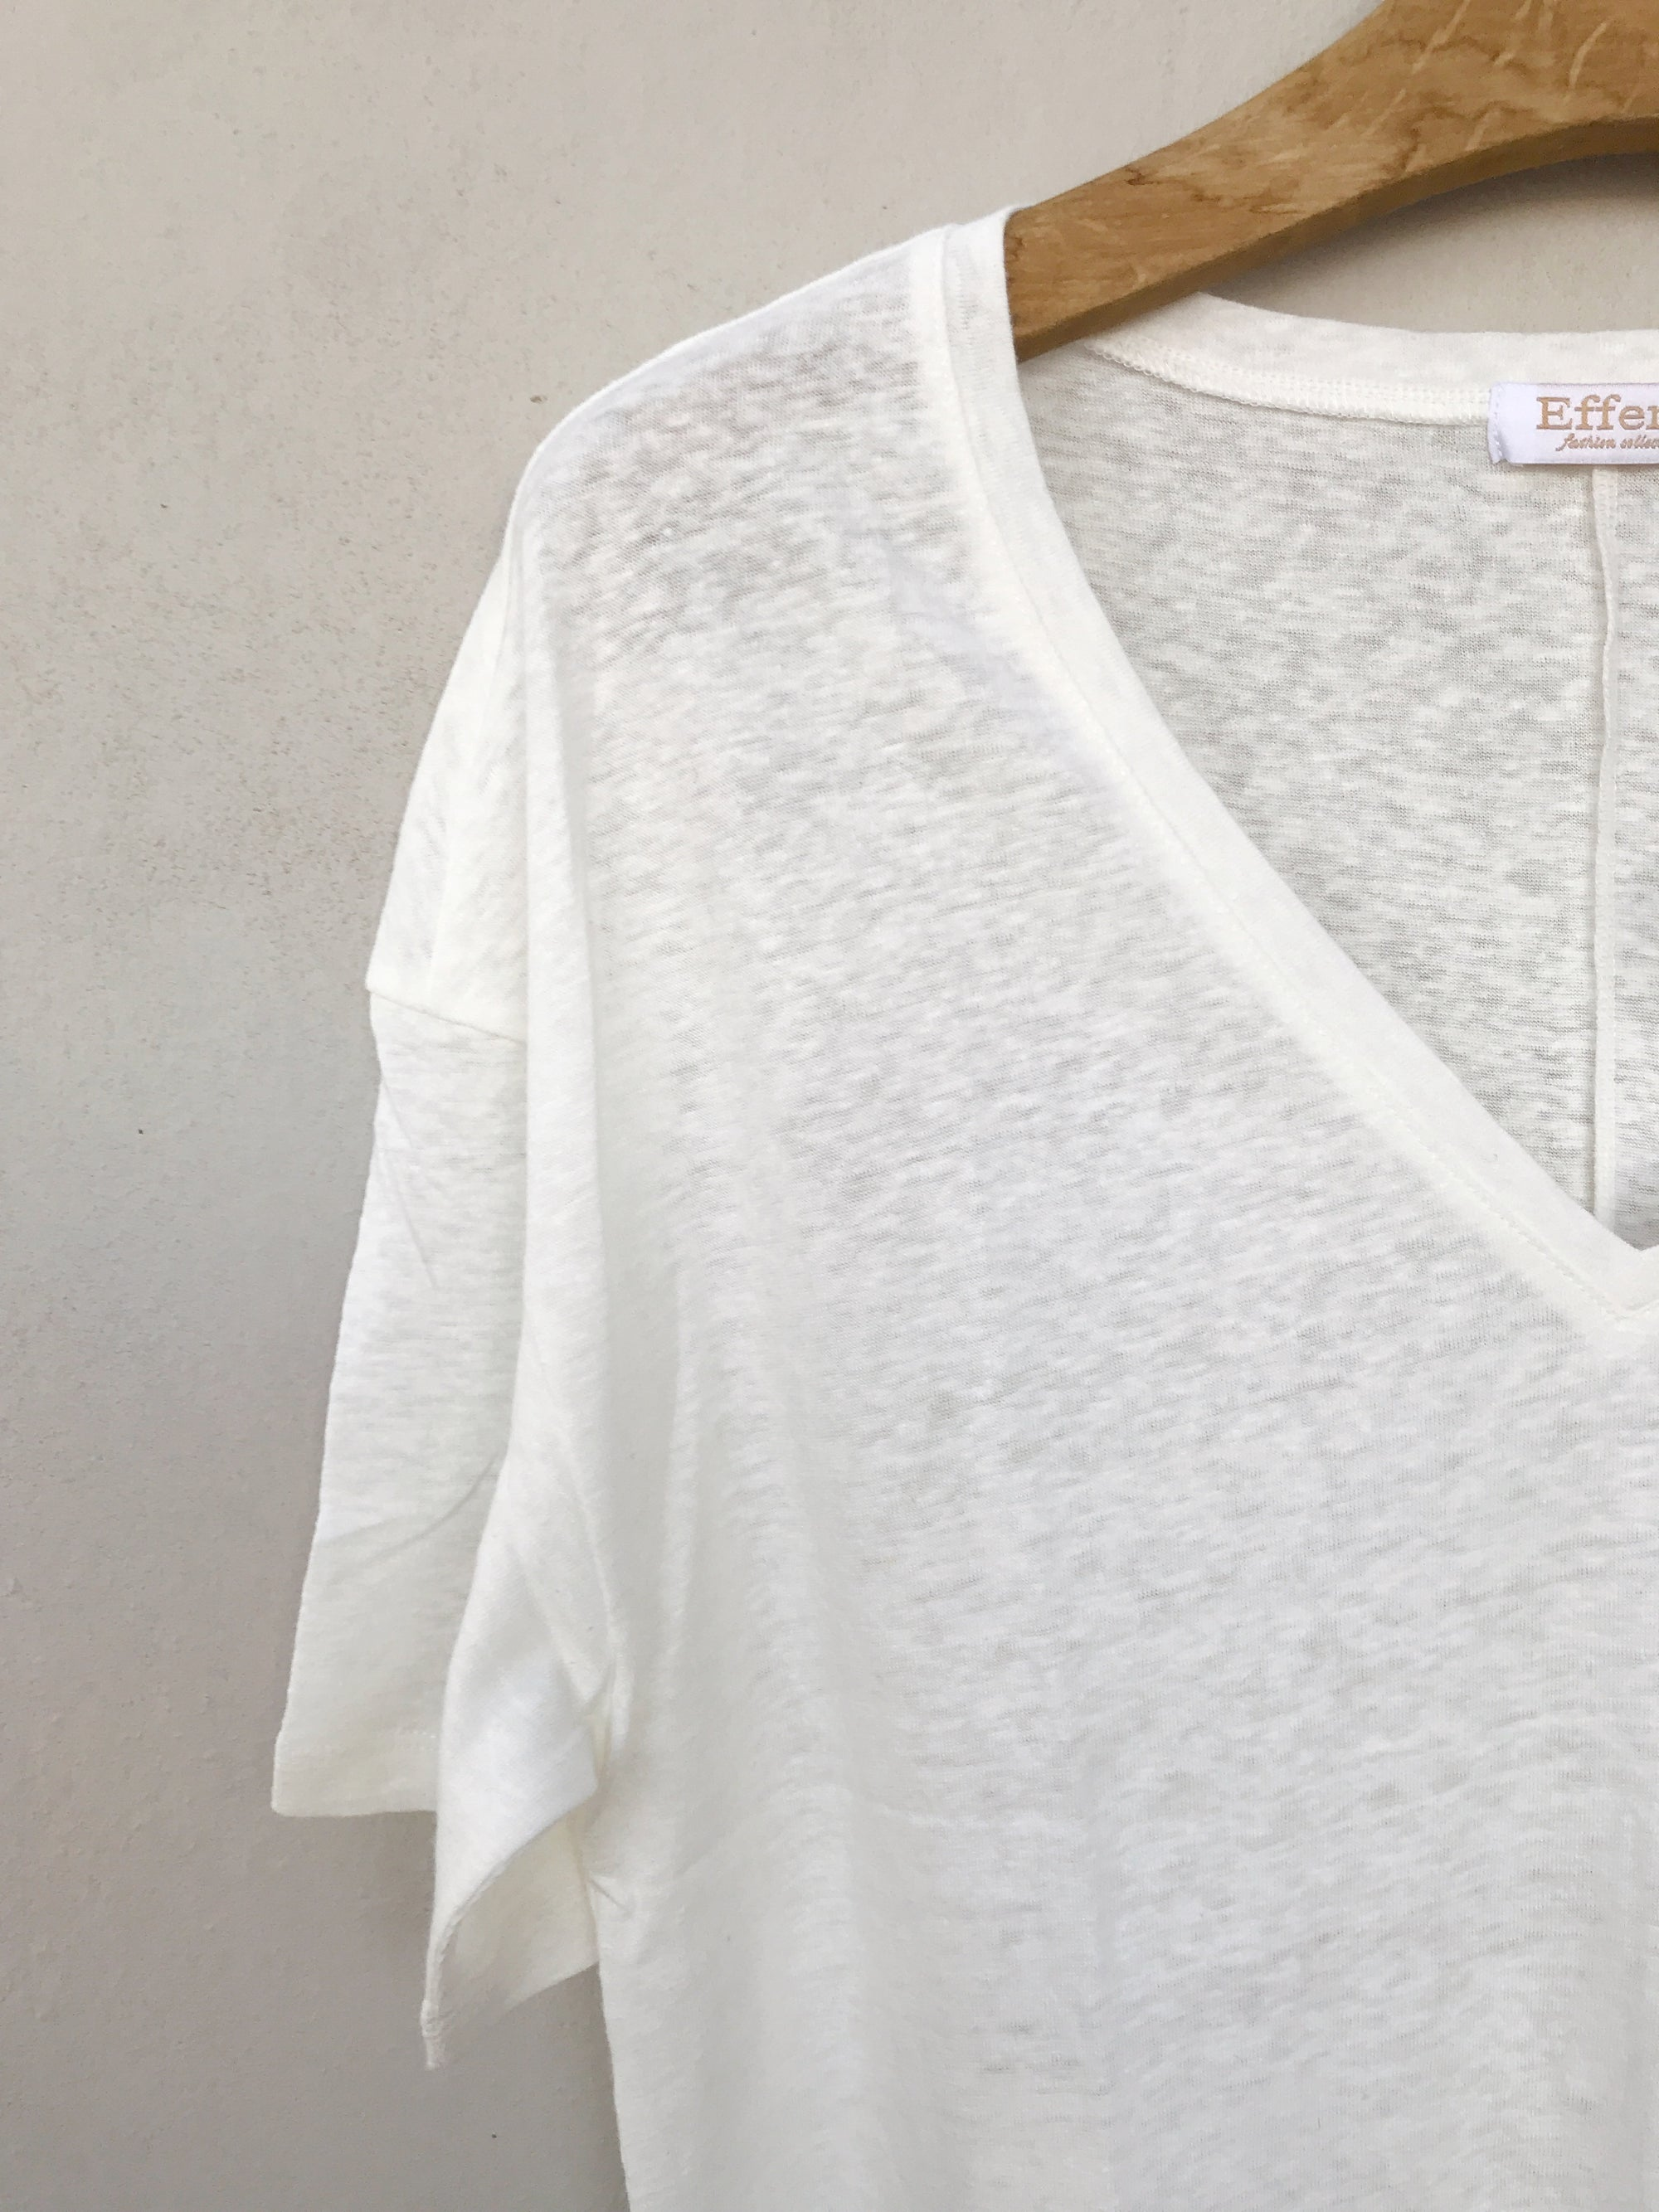 The Hemp T-Shirt, white